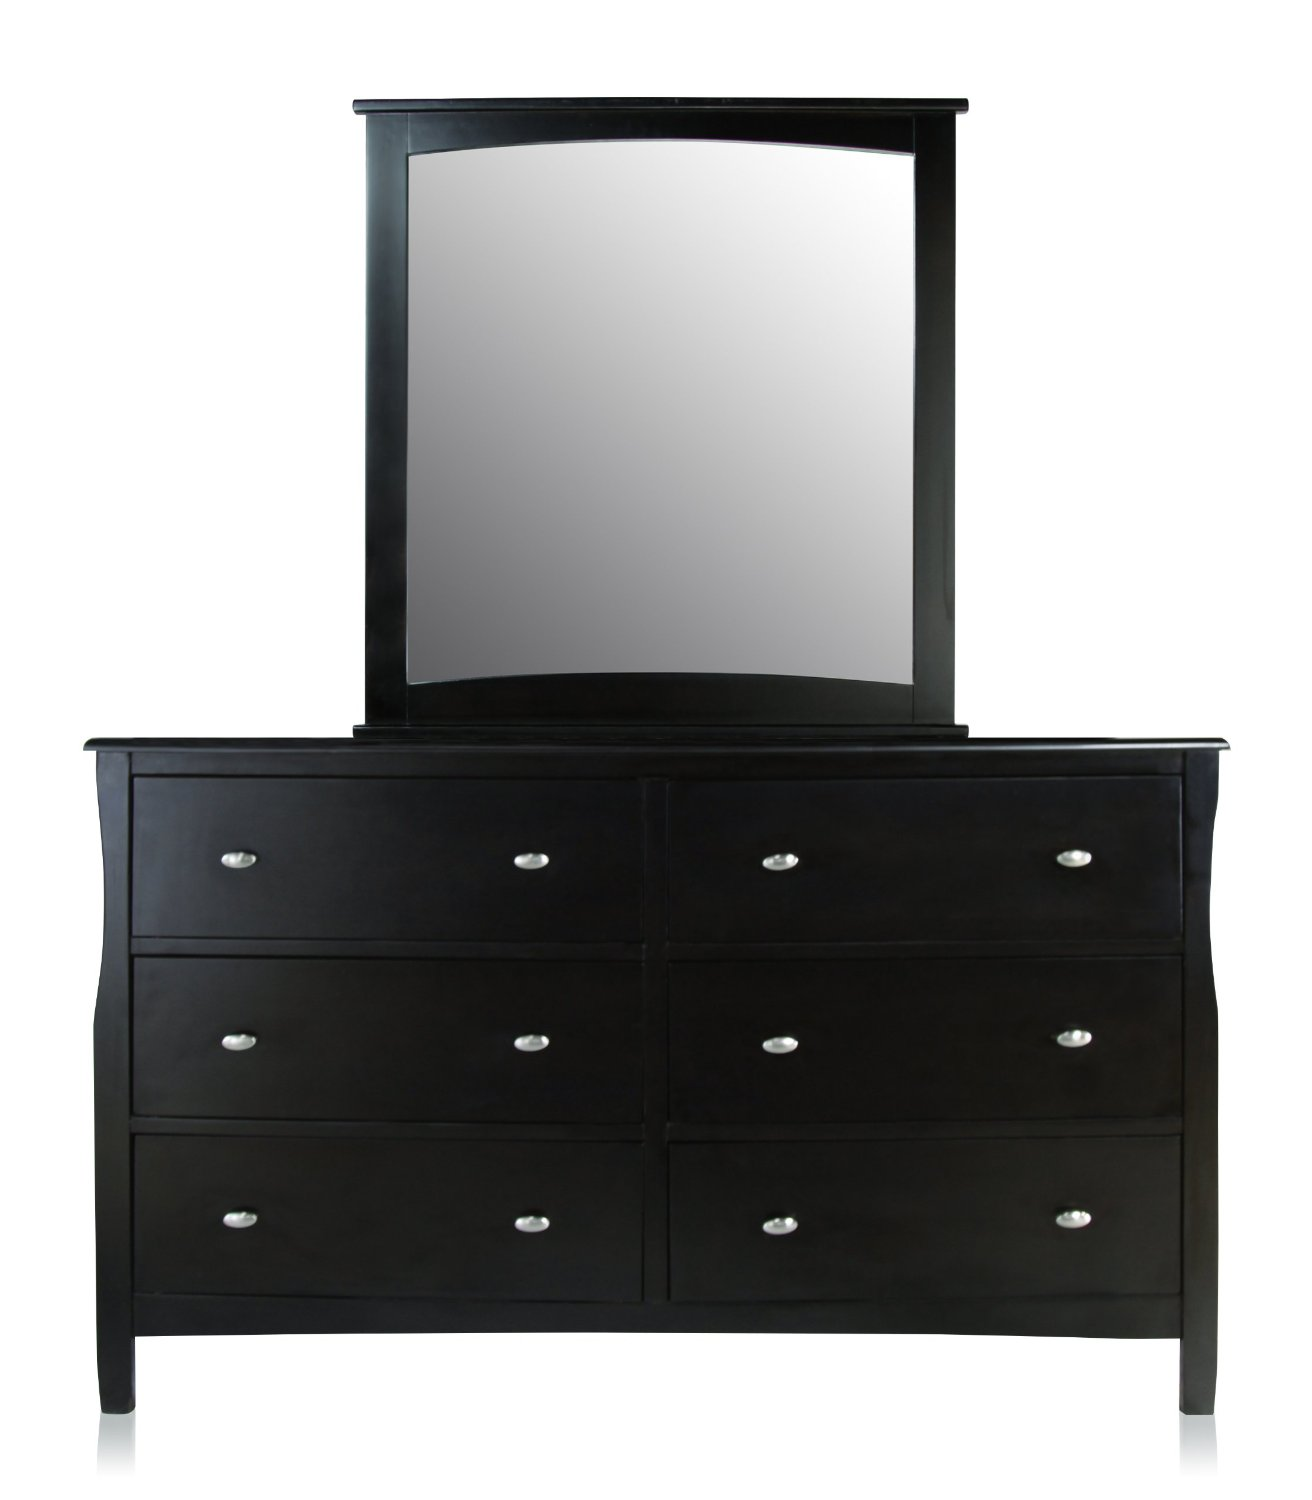 and breve passau in mid modus with by century prague products dresser mfix furniture modern mirror